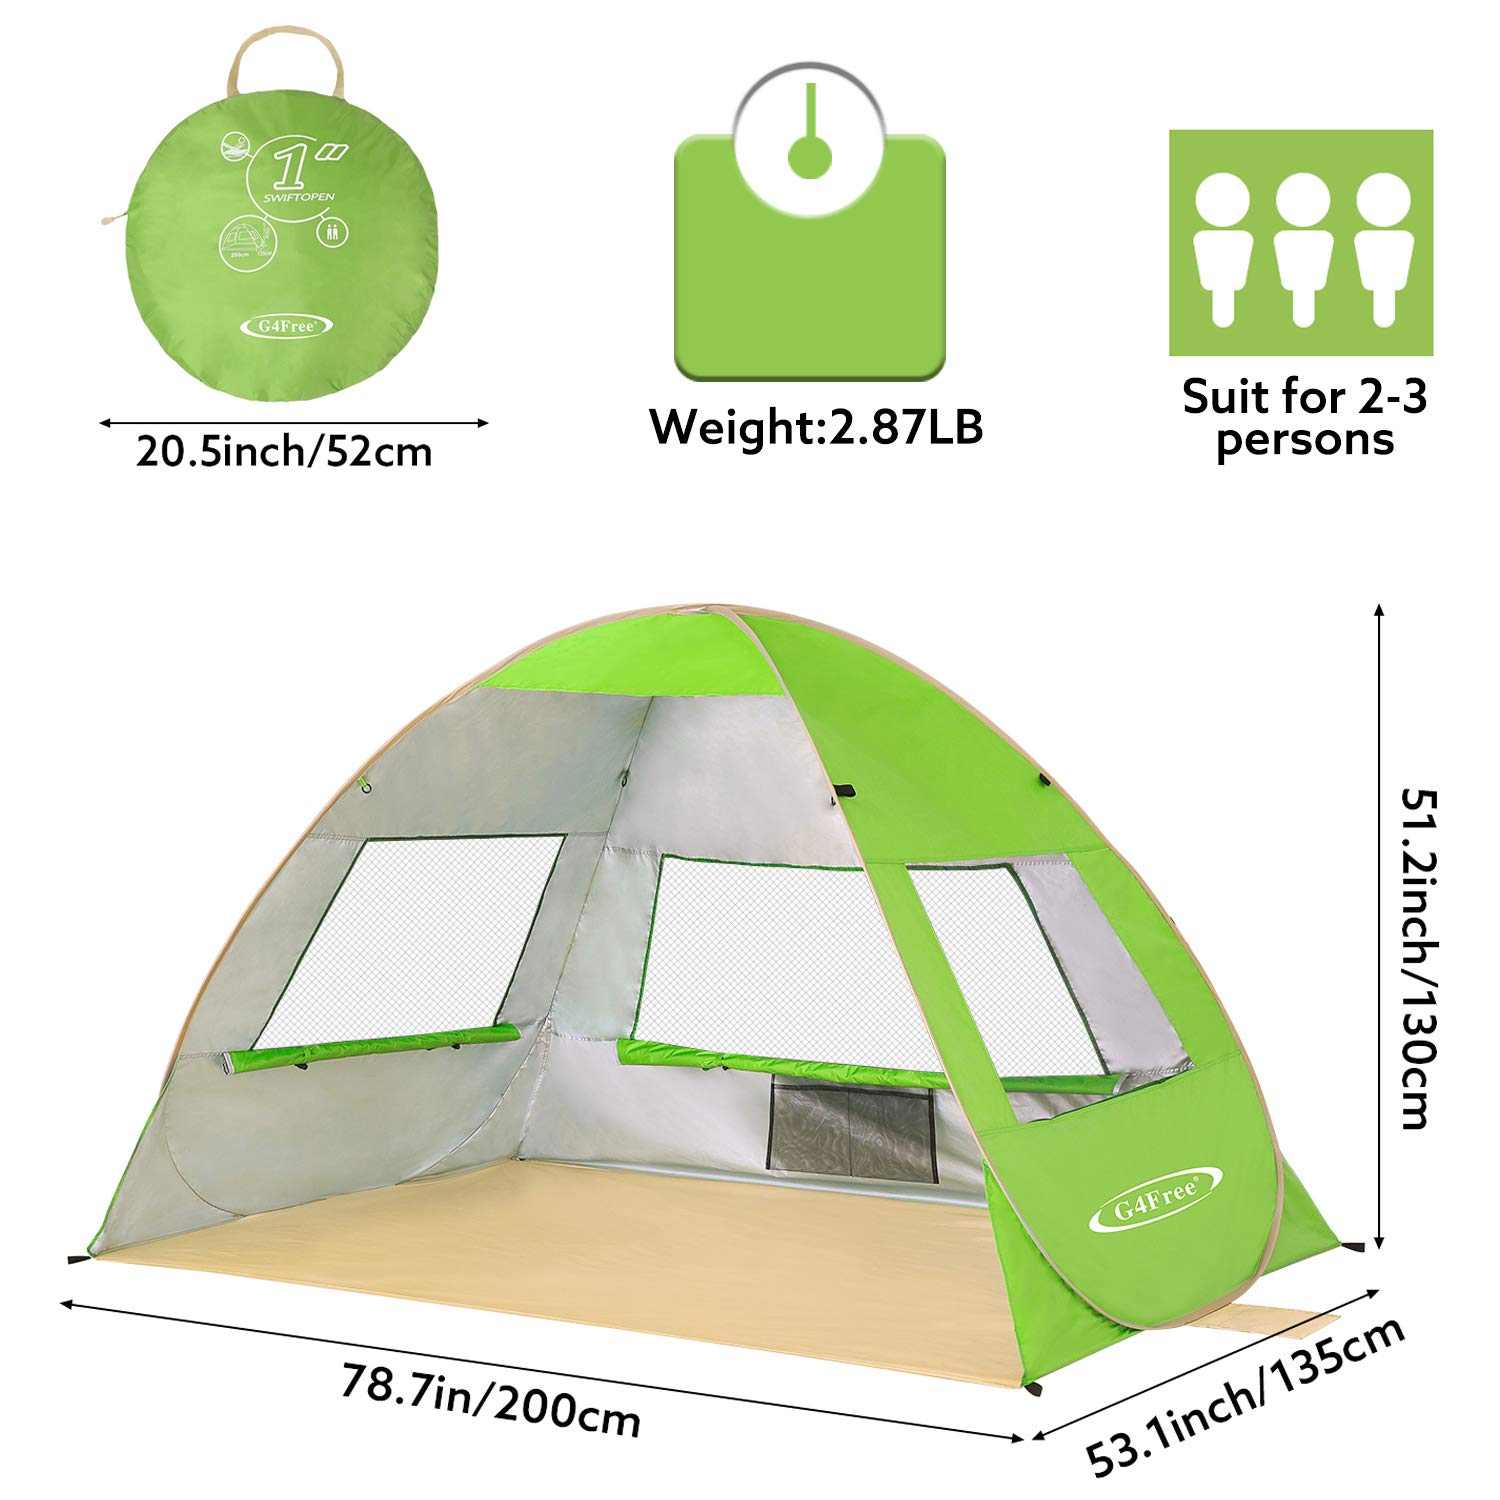 G4Free Pop Up Beach Tent 2-3 Persons Portable Beach Sun Shelter Instant Tents UPF 50 UV Protection Outdoor Camping Cabana for Family